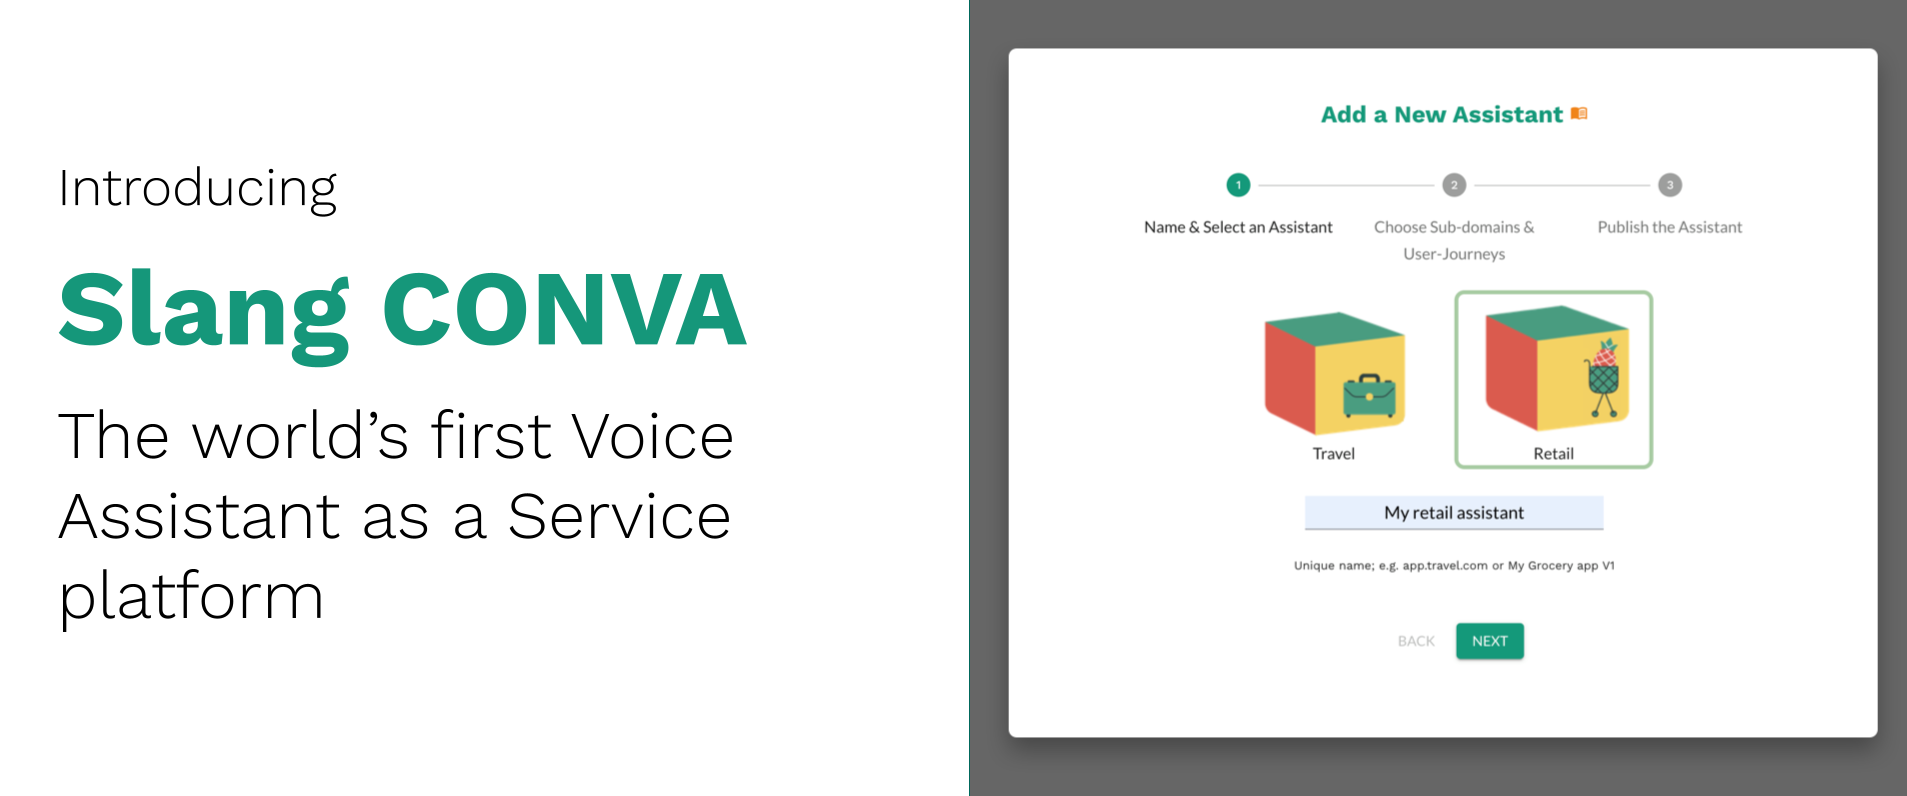 Slang CONVA, world's first Voice Assistant as a Service platform to help retail, e-commerce and pharma apps integrate assistants.